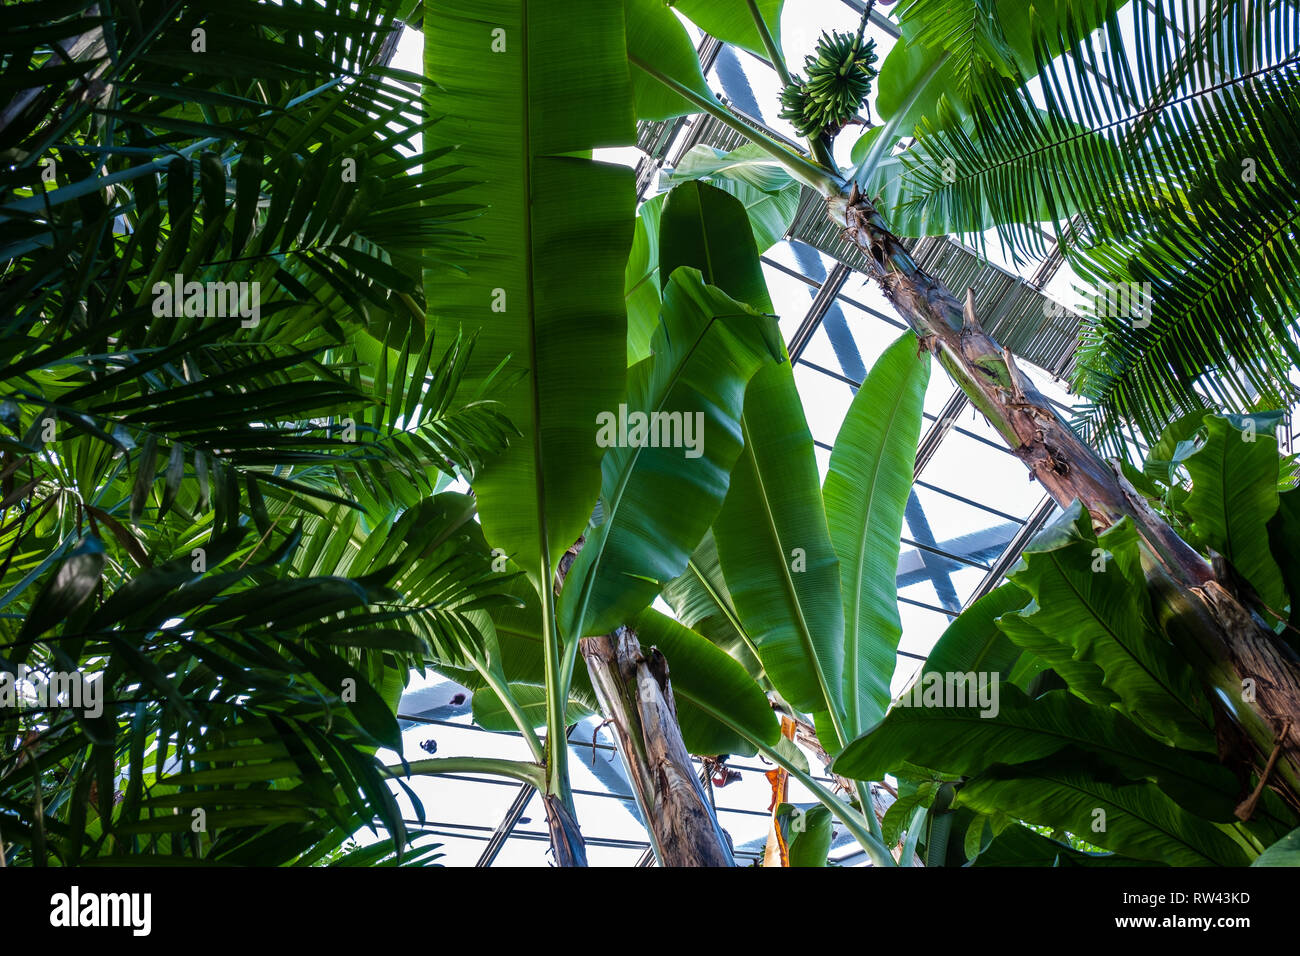 Banana trees in the greenhouse.High angel view - Stock Image